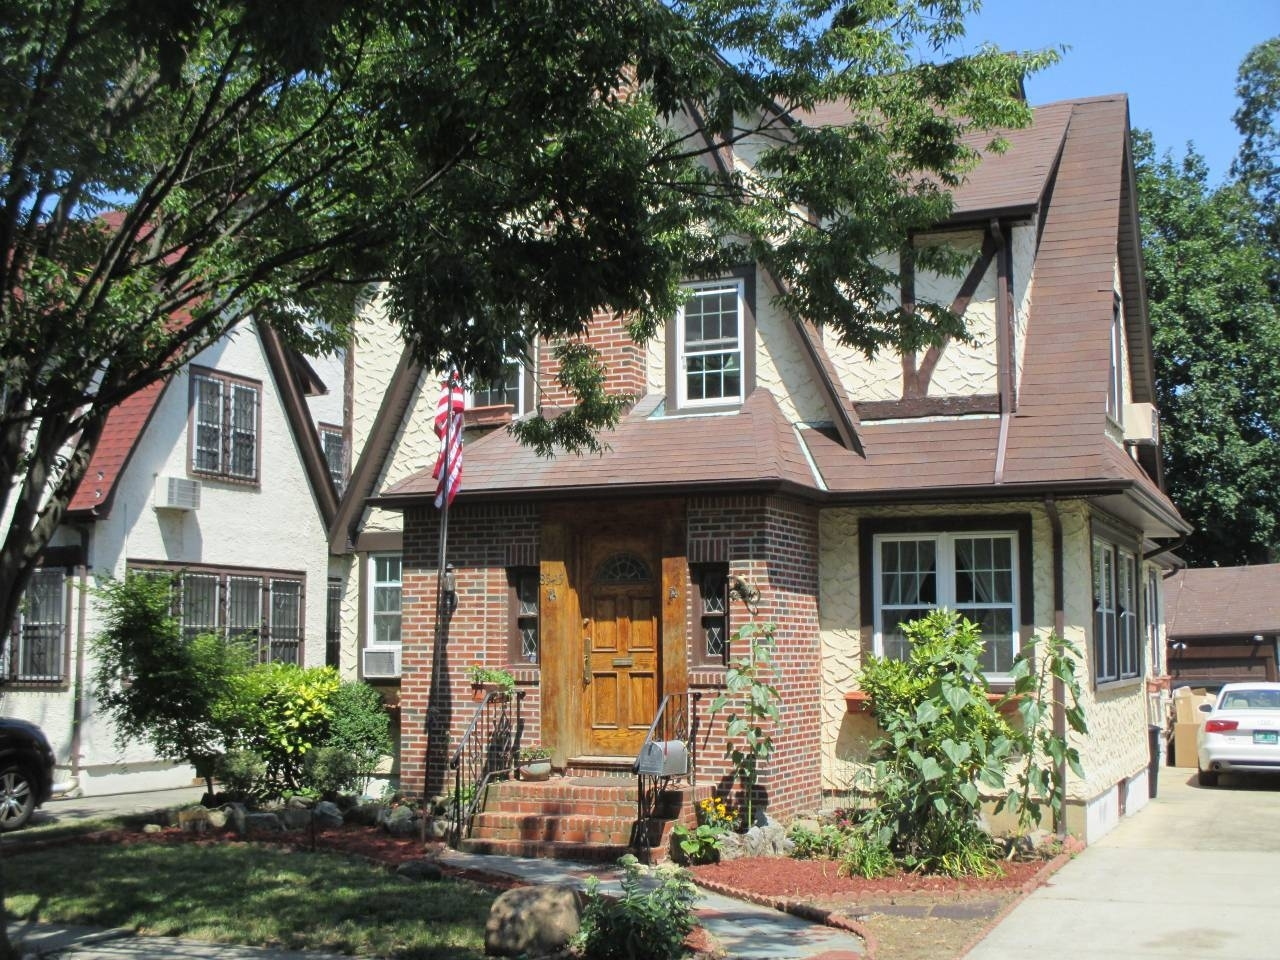 Donald Trump's childhood home listed on Airbnb